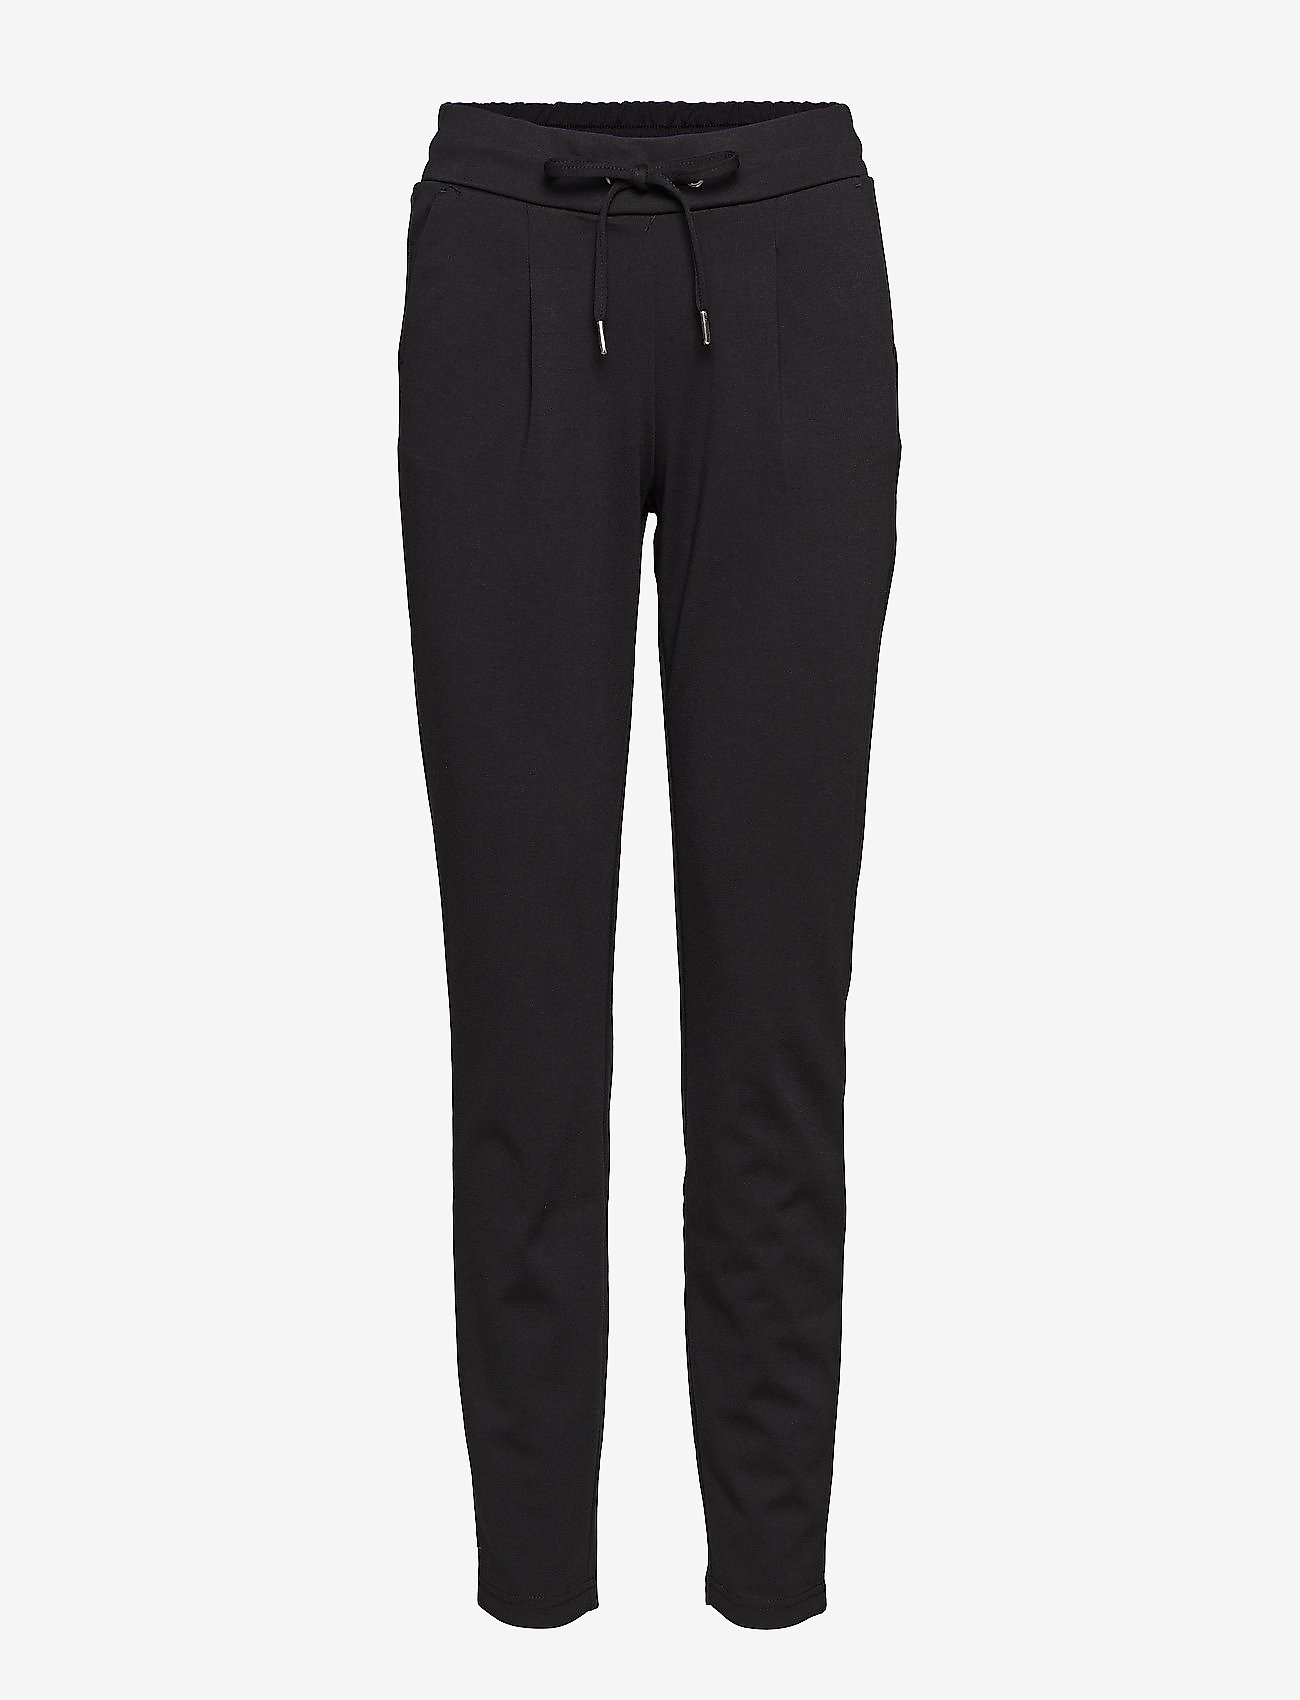 b.young - Rizetta pants 2 - Jersey - slim fit trousers - black - 0